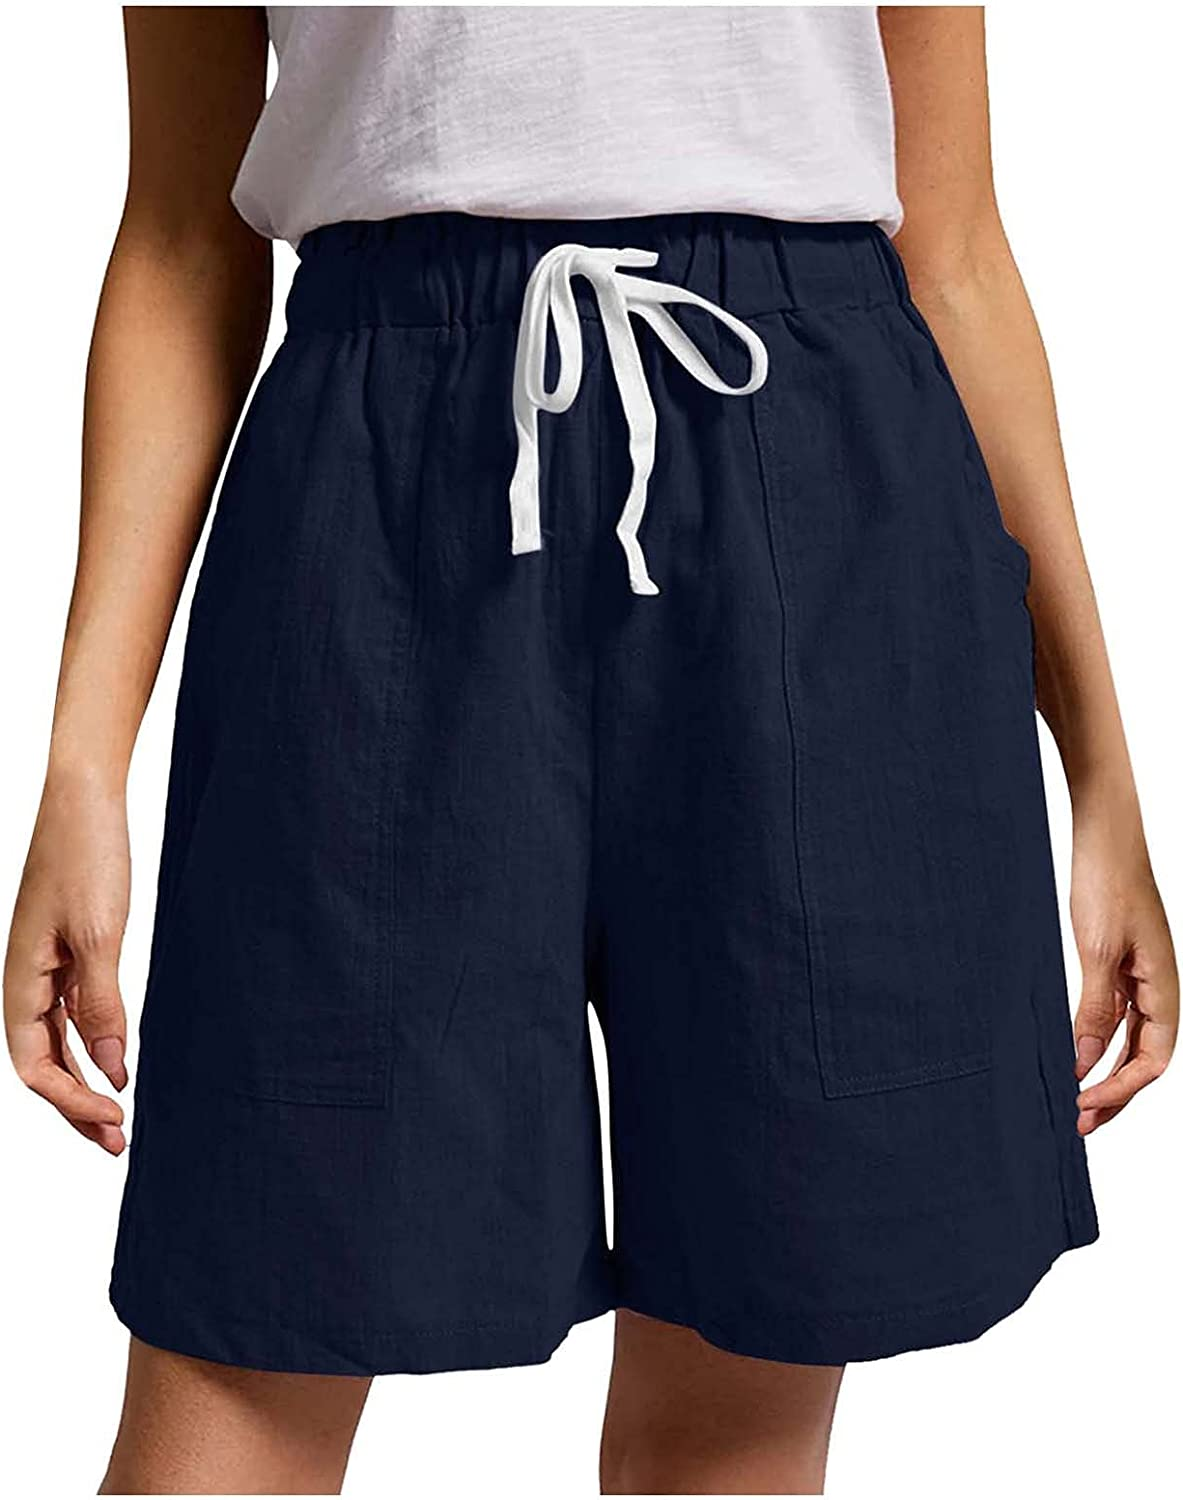 Athletic Shorts for Women Women's Online limited product Acti Sport Running Max 63% OFF Gym